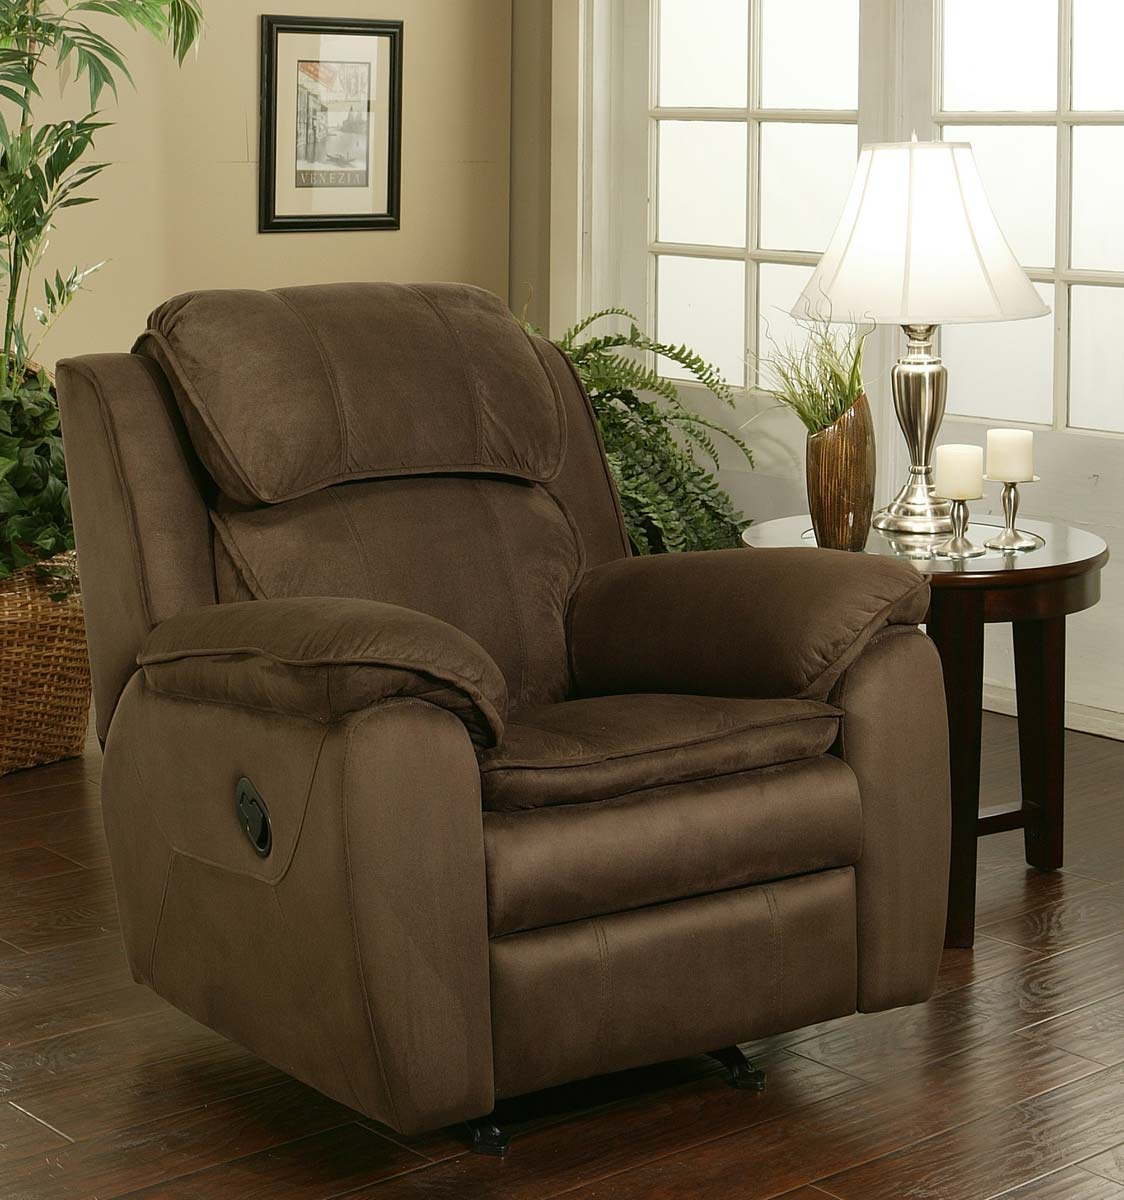 dark brown microsuede rocker recliner abbyson living 39 5 w x 39 q